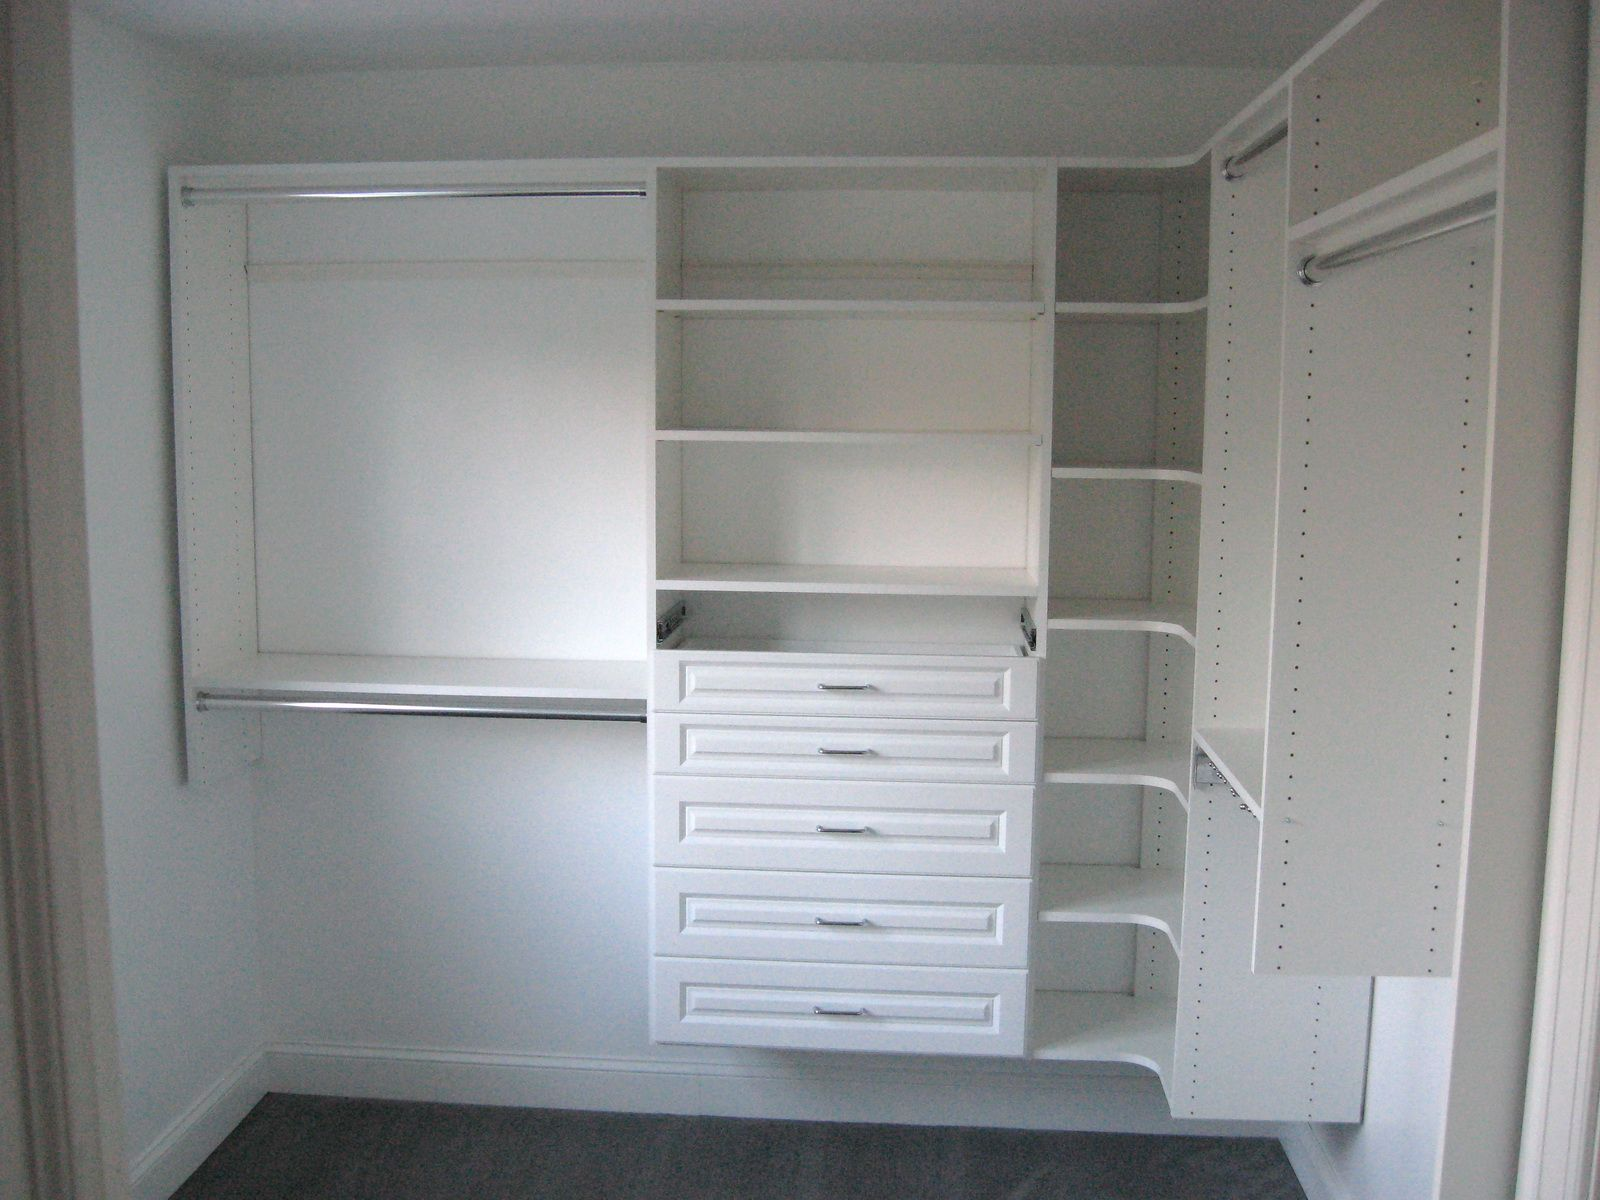 Metal Closet Gray Metal Closet Shelving Easyclosets Stuff To